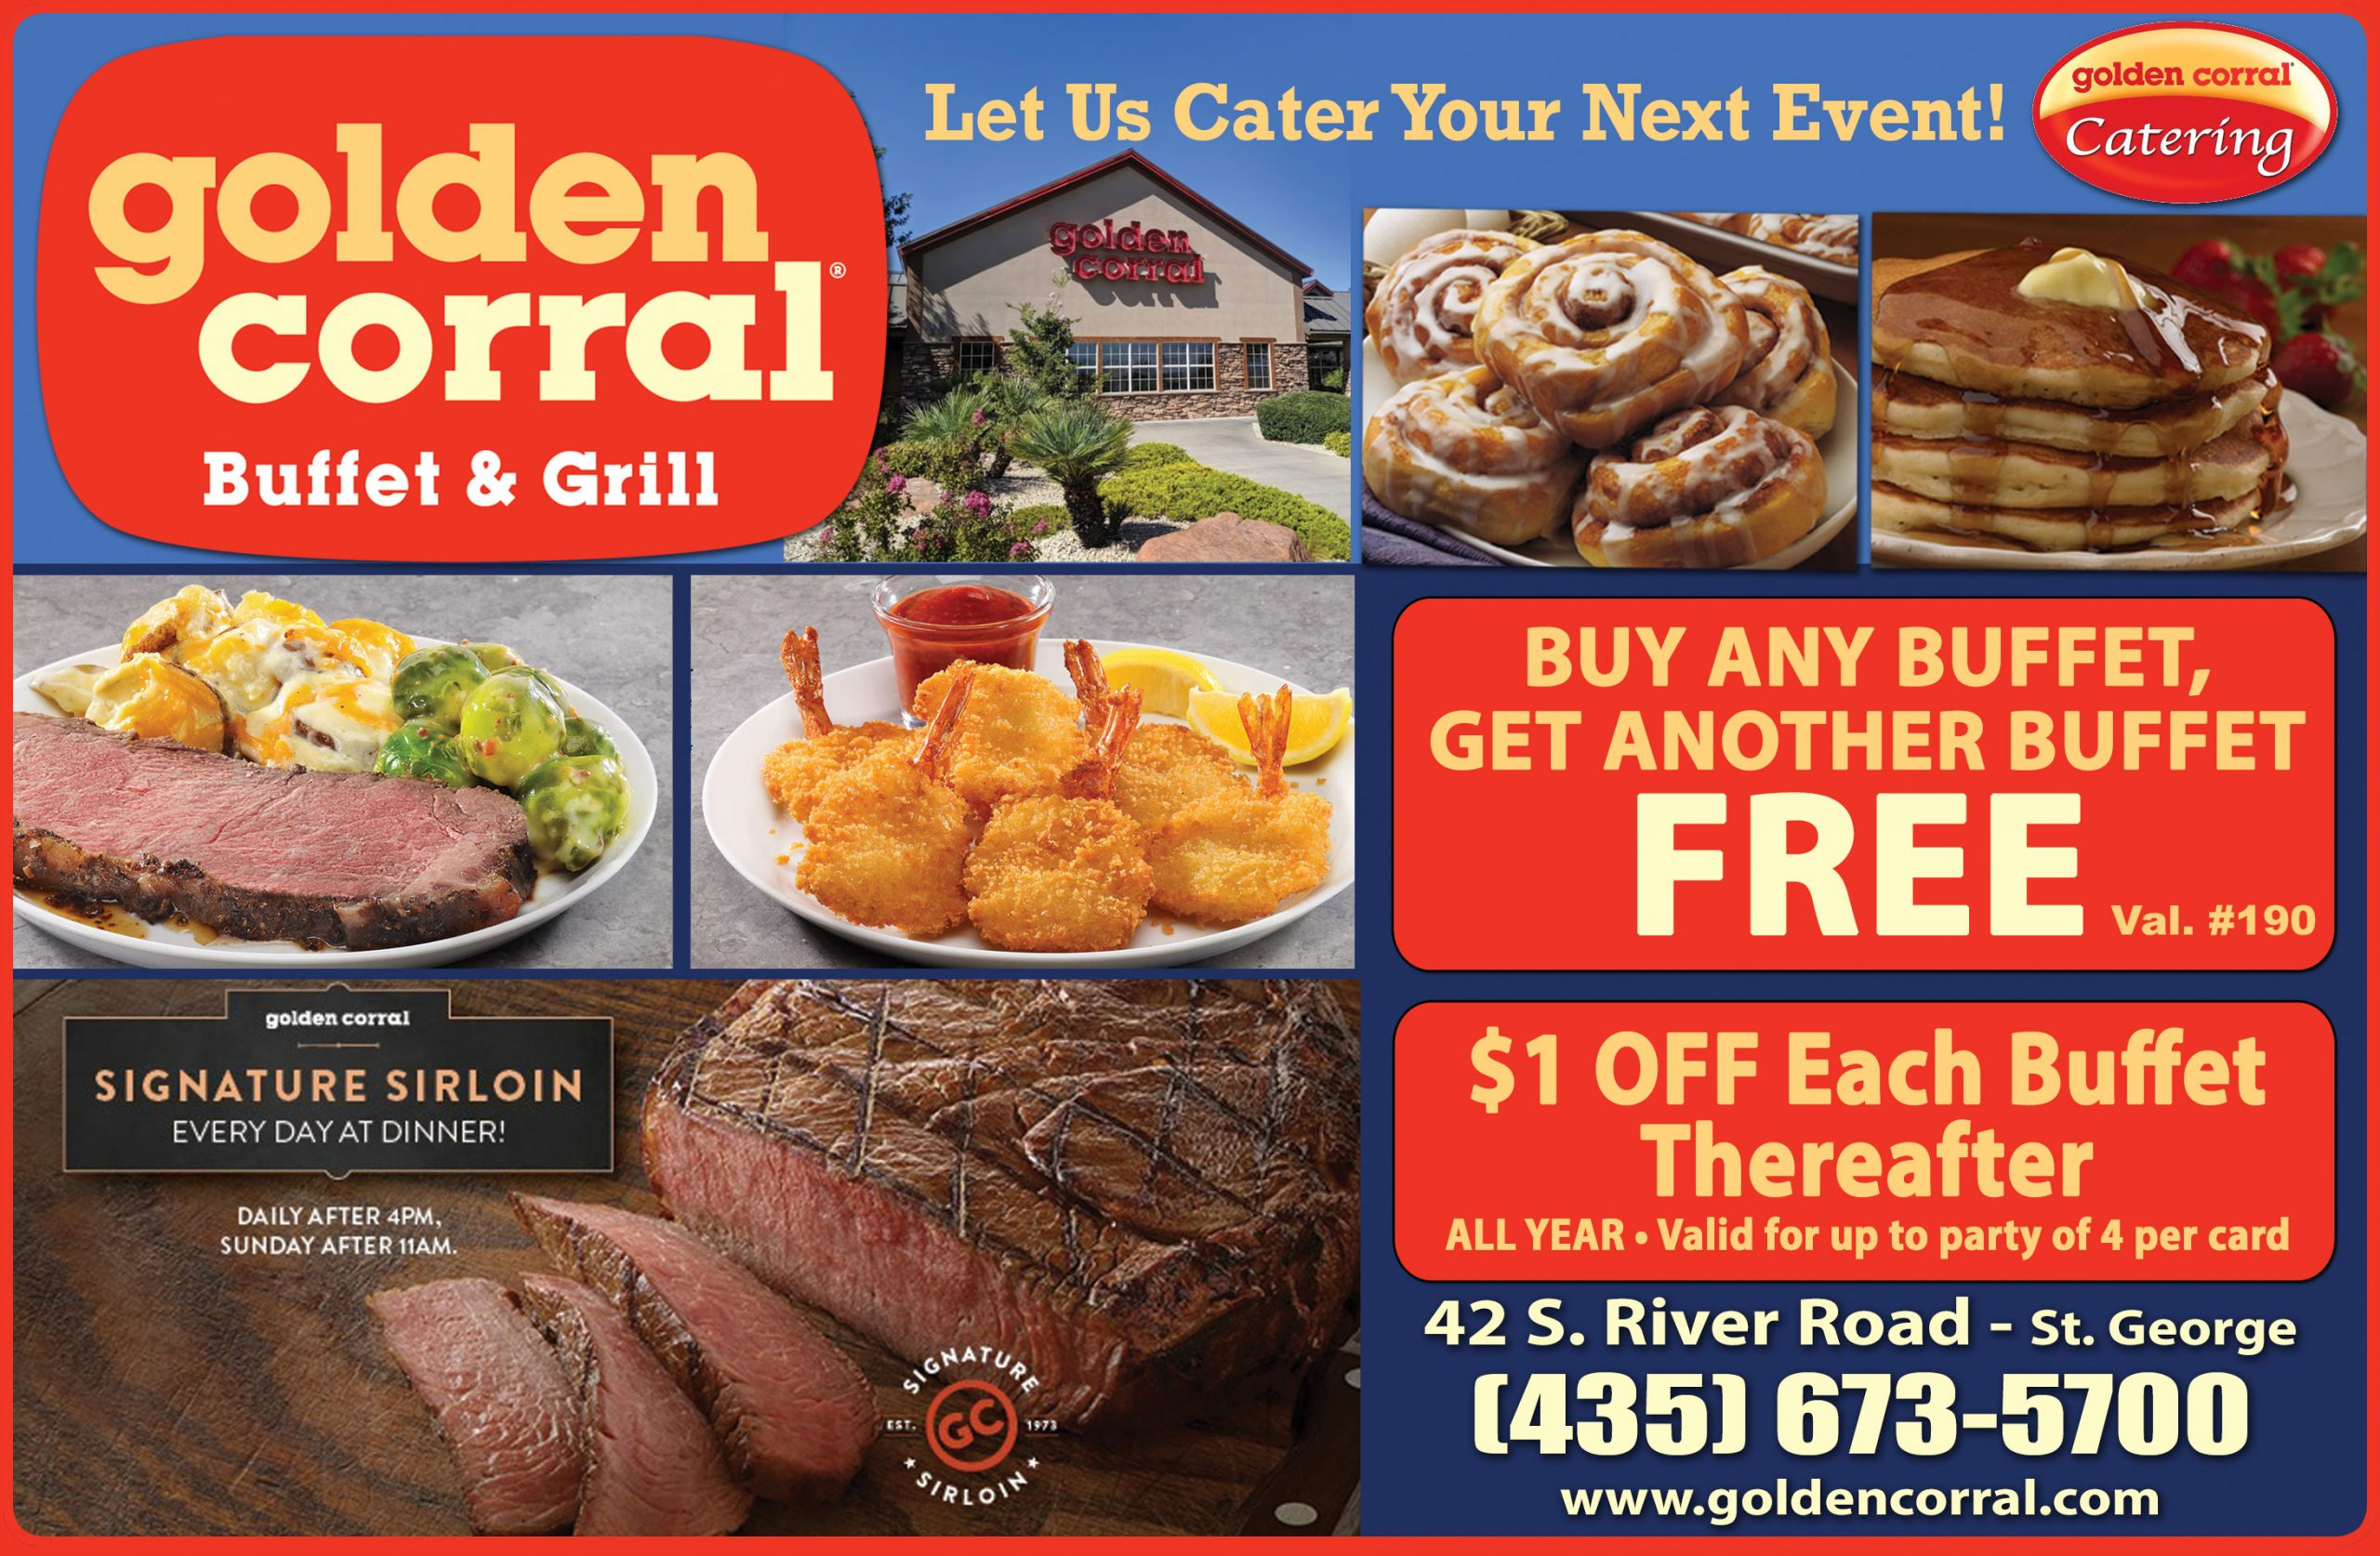 golden corral - buffet where you can eat all day